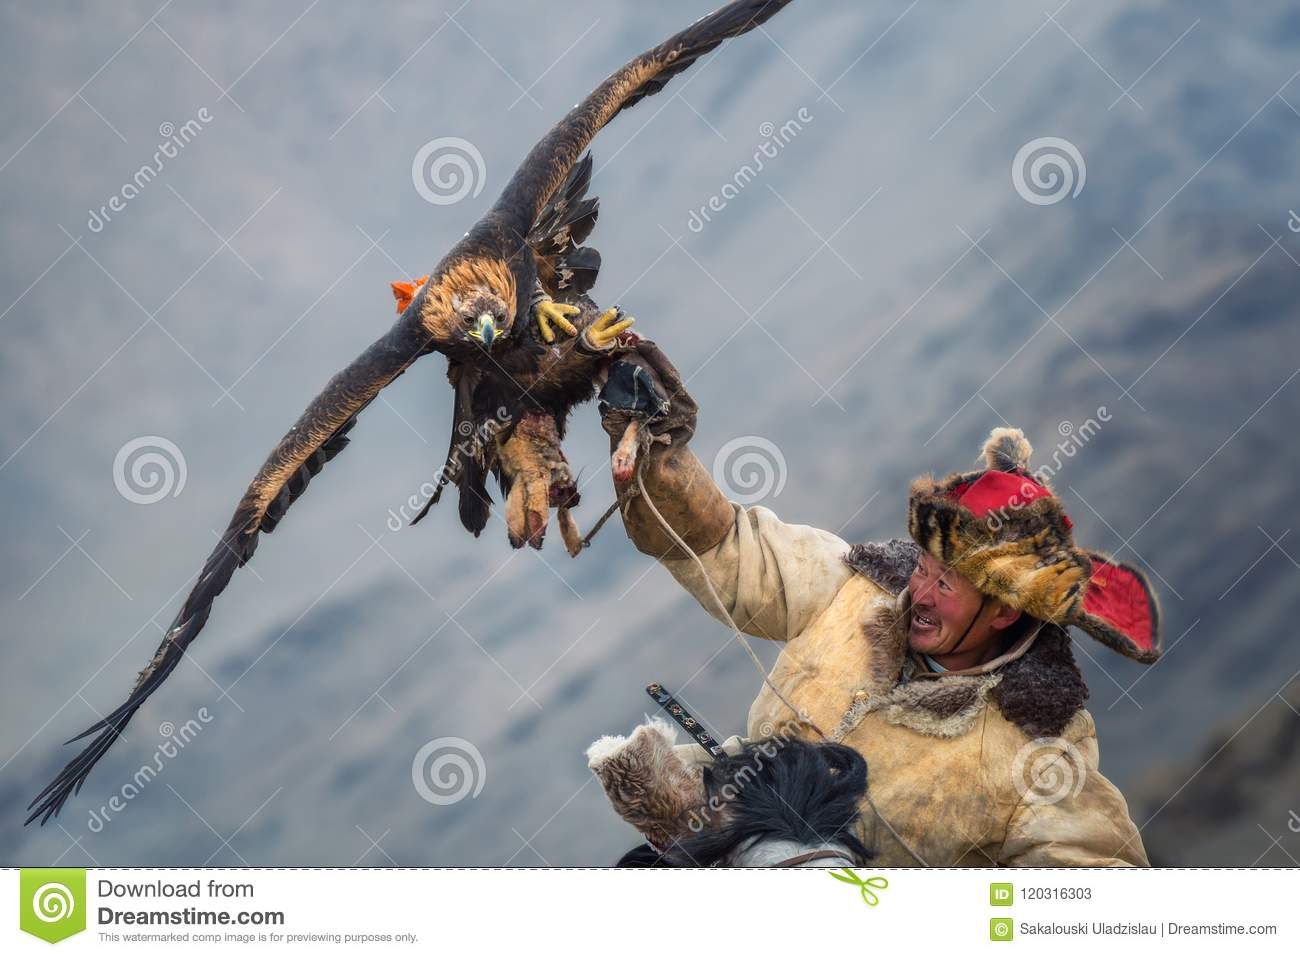 Download Mongolia, Golden Eagle Festival.Hunter On Horse With A Magnificent Golden Eagle, Spreading His Wings And Holding Its Prey. Editorial Stock Photo - Image of kind, festival: 120316303